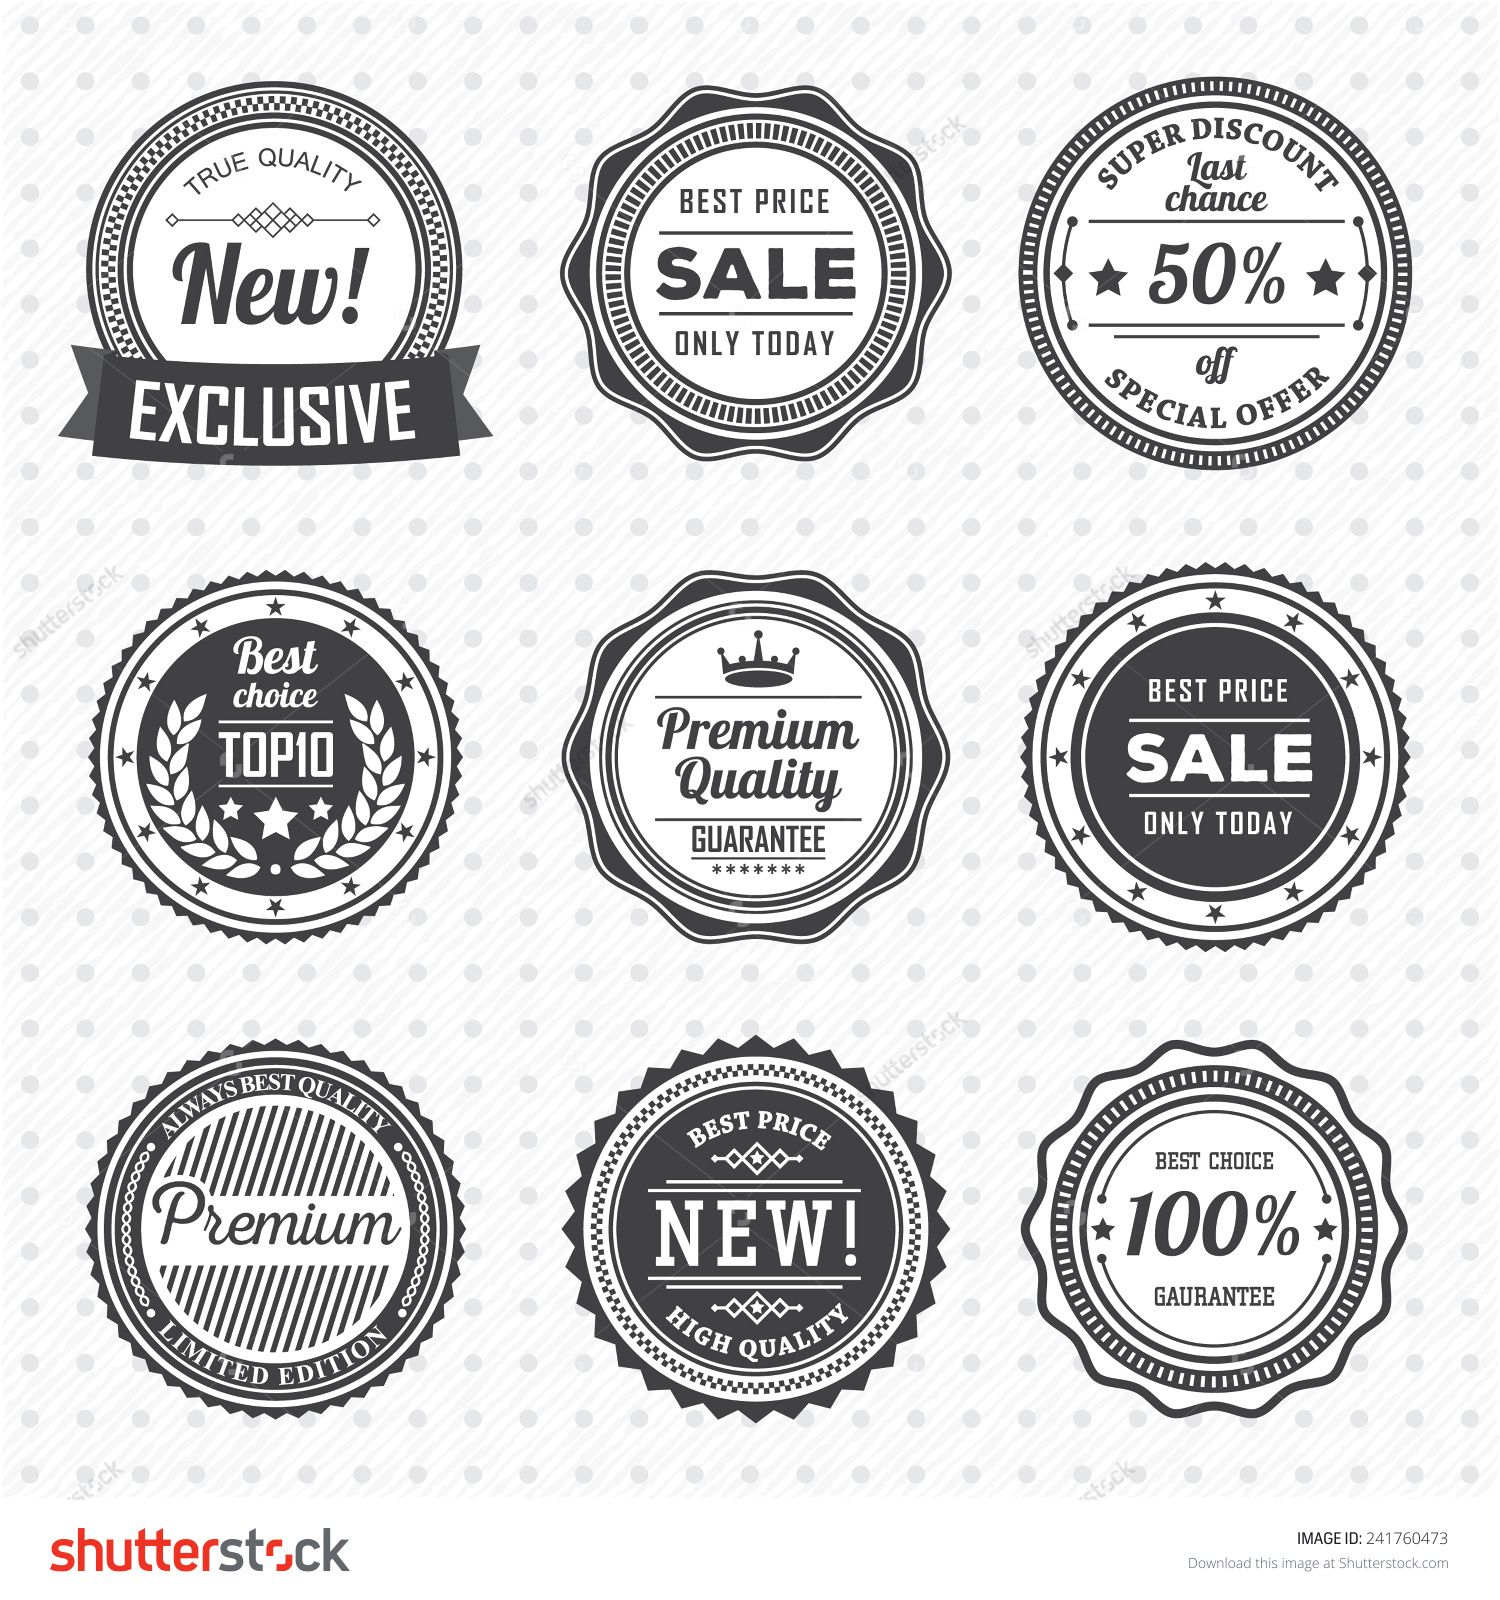 Vintage Labels Template Set Vector Design Elements Business Signs Logos Identity Retro Badges And Objects For Label Templates Label Design Business Signs